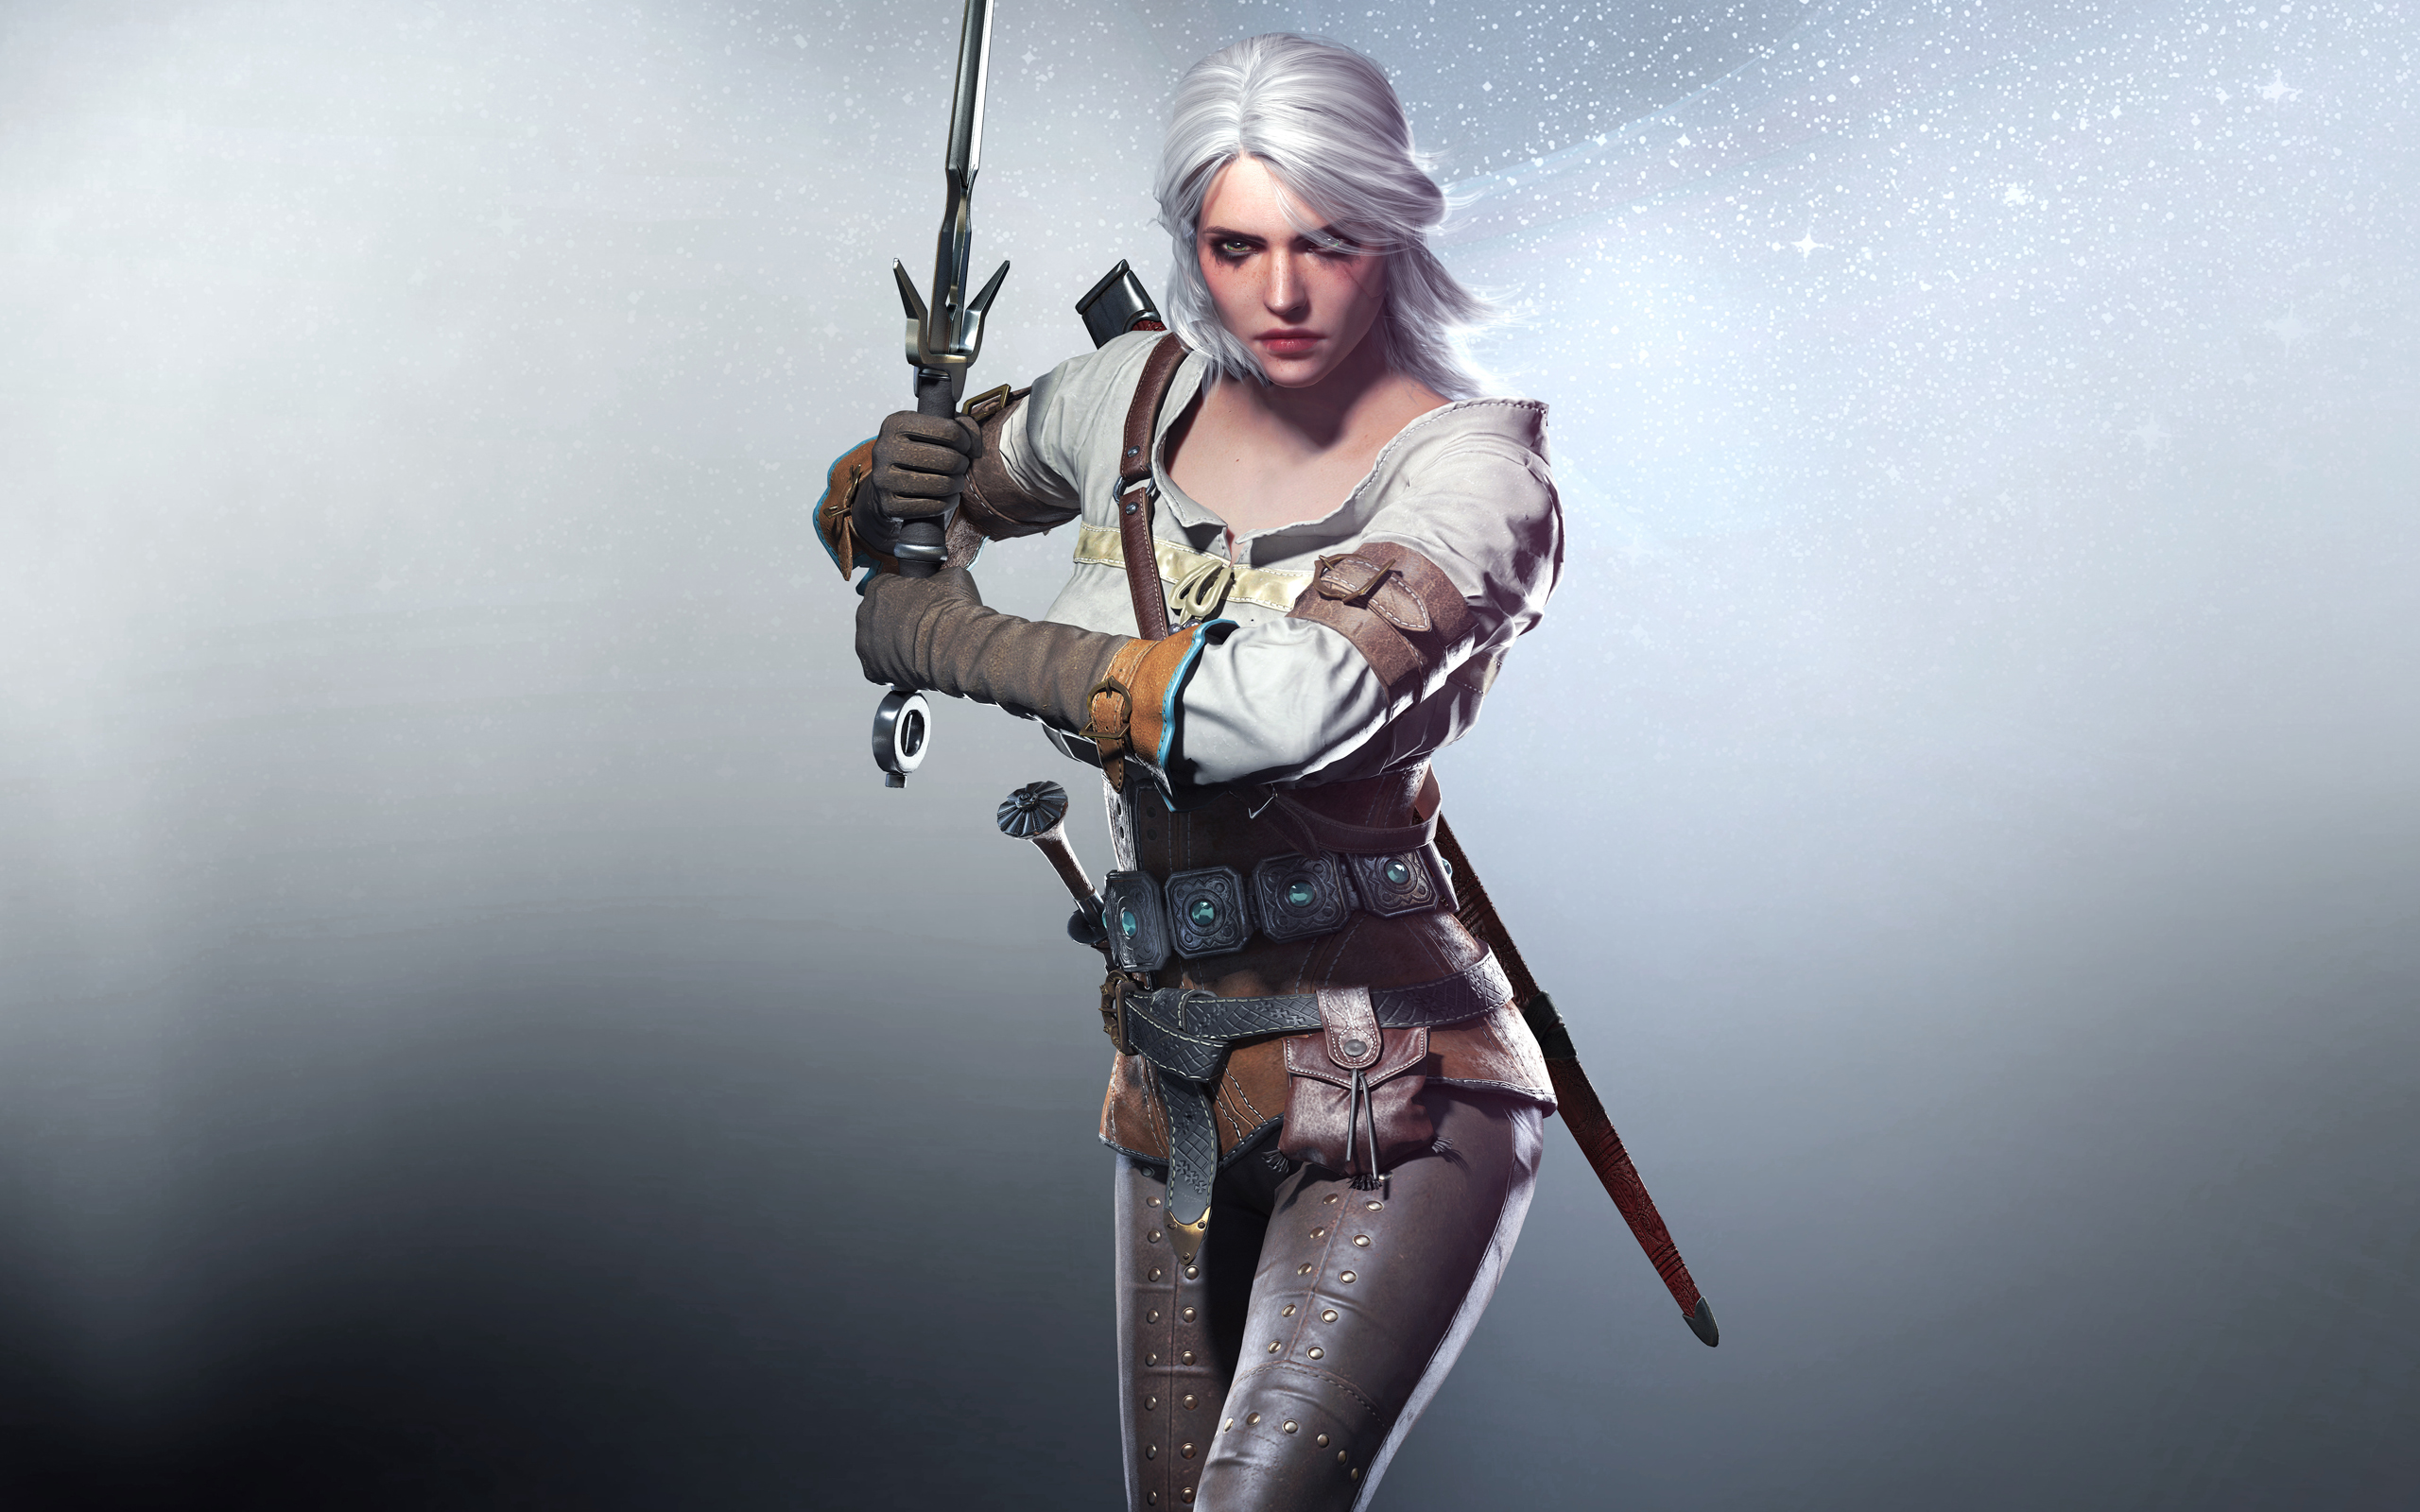 The Witcher 3 - Wild Hunt Cosplay